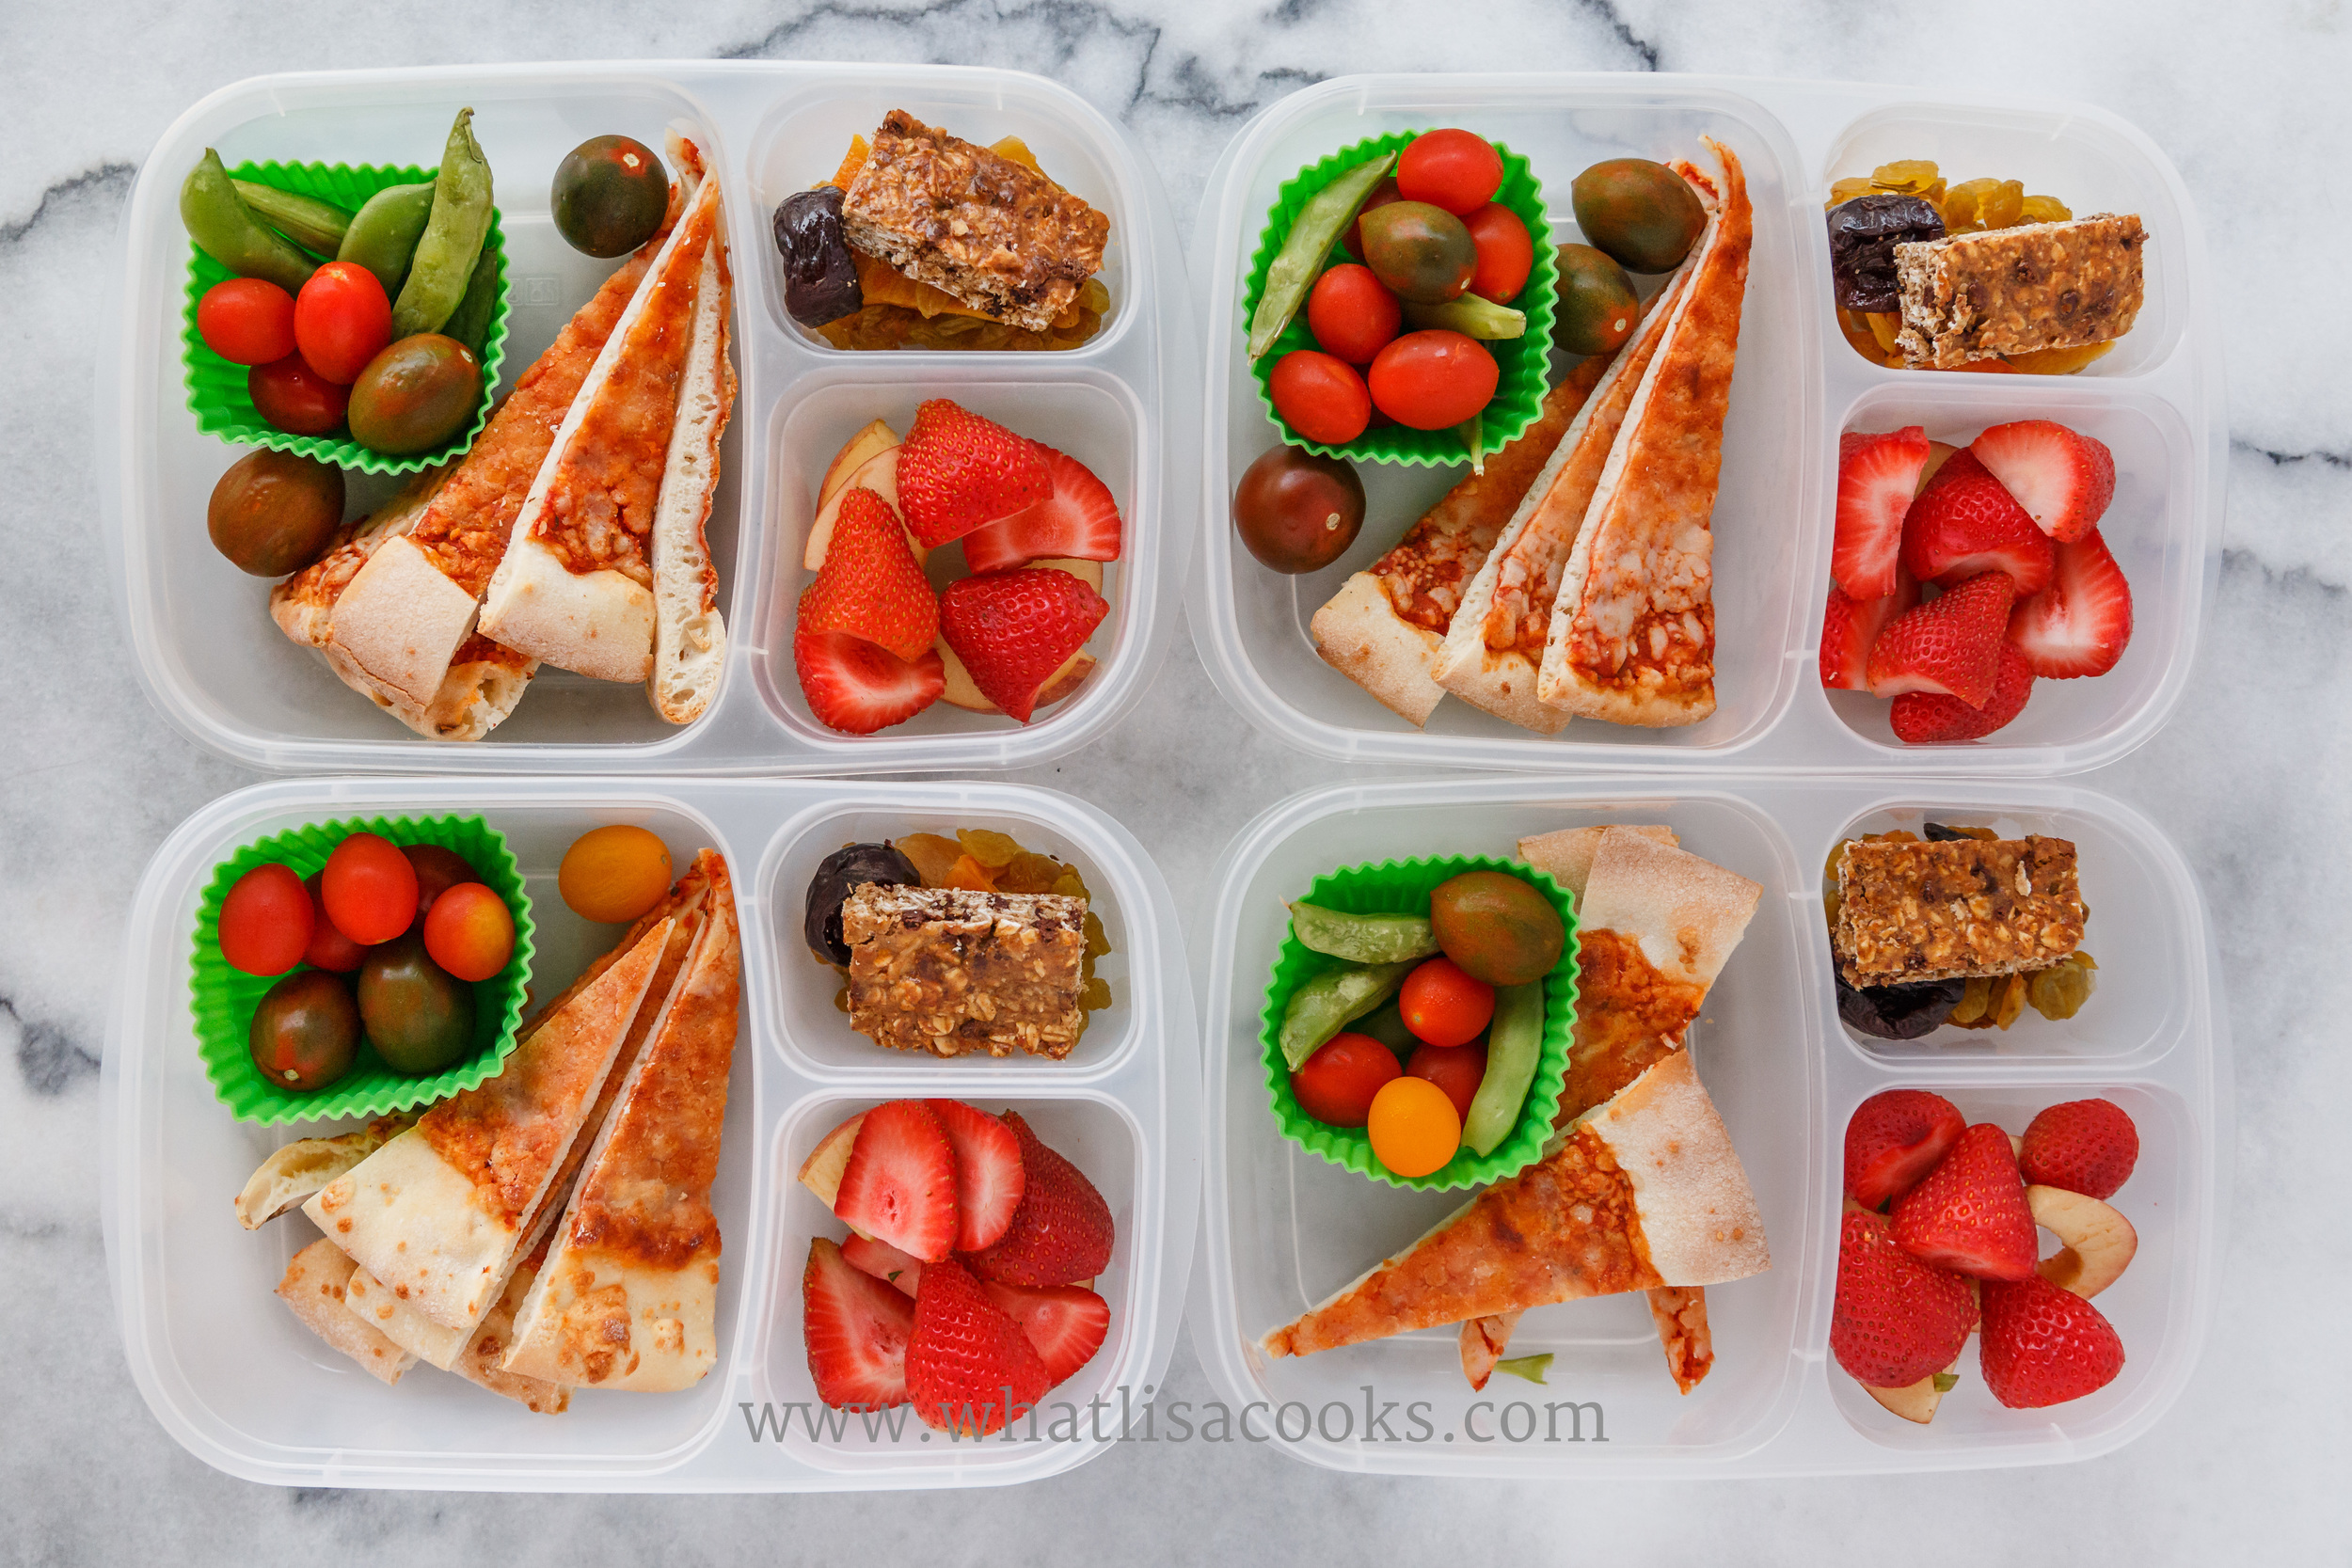 Leftover pizza, tomatoes, sugar snap peas, strawberries, homemade granola bar, raisins, and a prune. Packed in  Easy Lunchboxes .